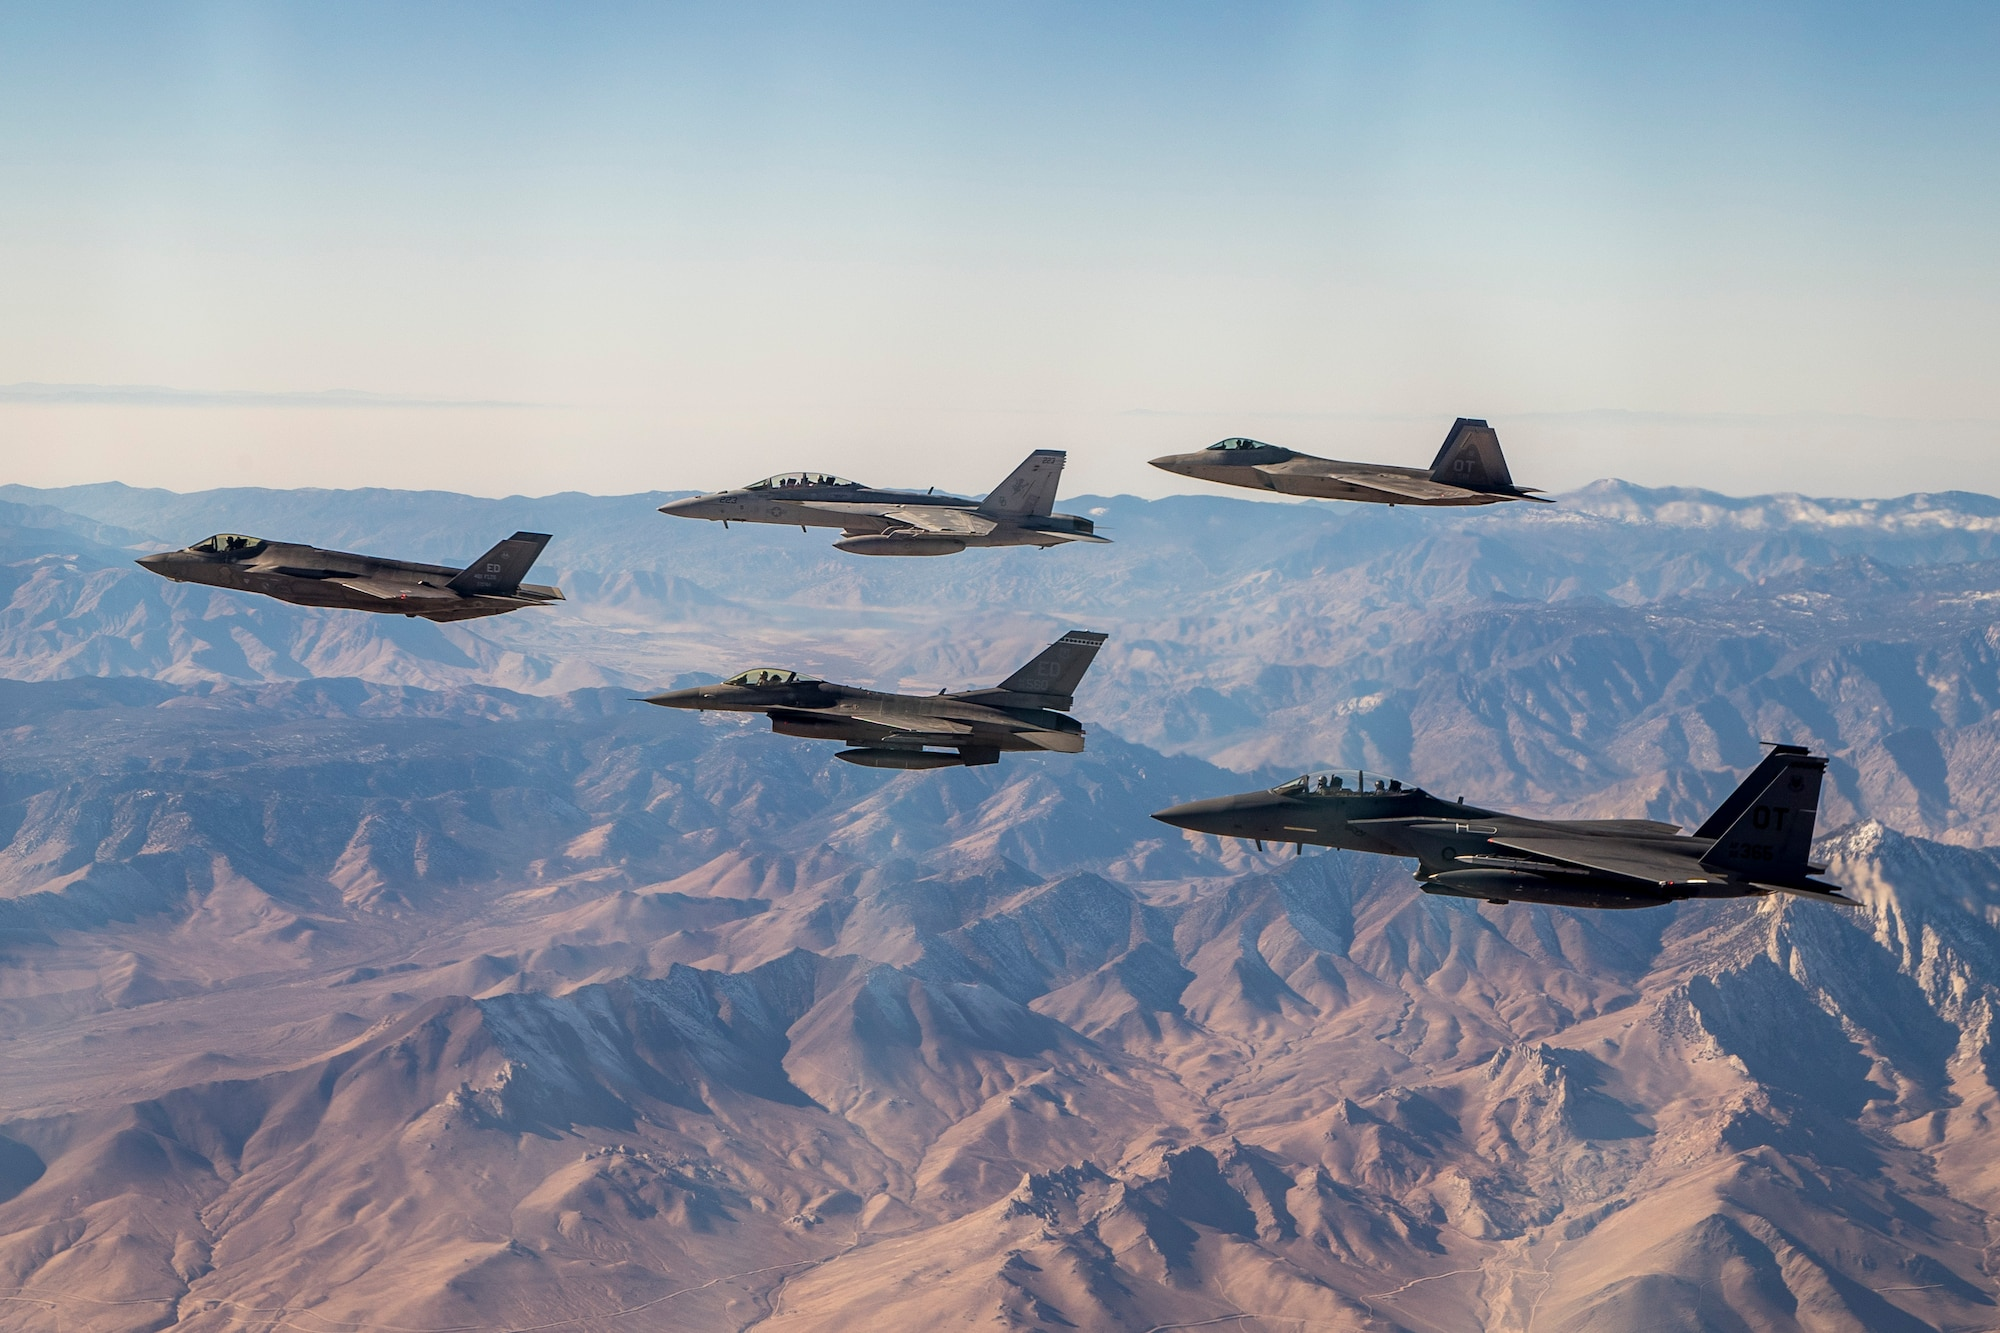 An F-35 and F-16 from Edwards Air Force Base are joined by an F-15E and F-22 from the 422nd Test and Evaluation Squadron out of Nellis Air Force Base, Nevada, along with a Navy F-18 from Air Test and Evaluation Squadron 31 out of Naval Air Weapons Station China Lake, California, Dec. 31. (U.S. Air Force photo by Ethan Wagner)